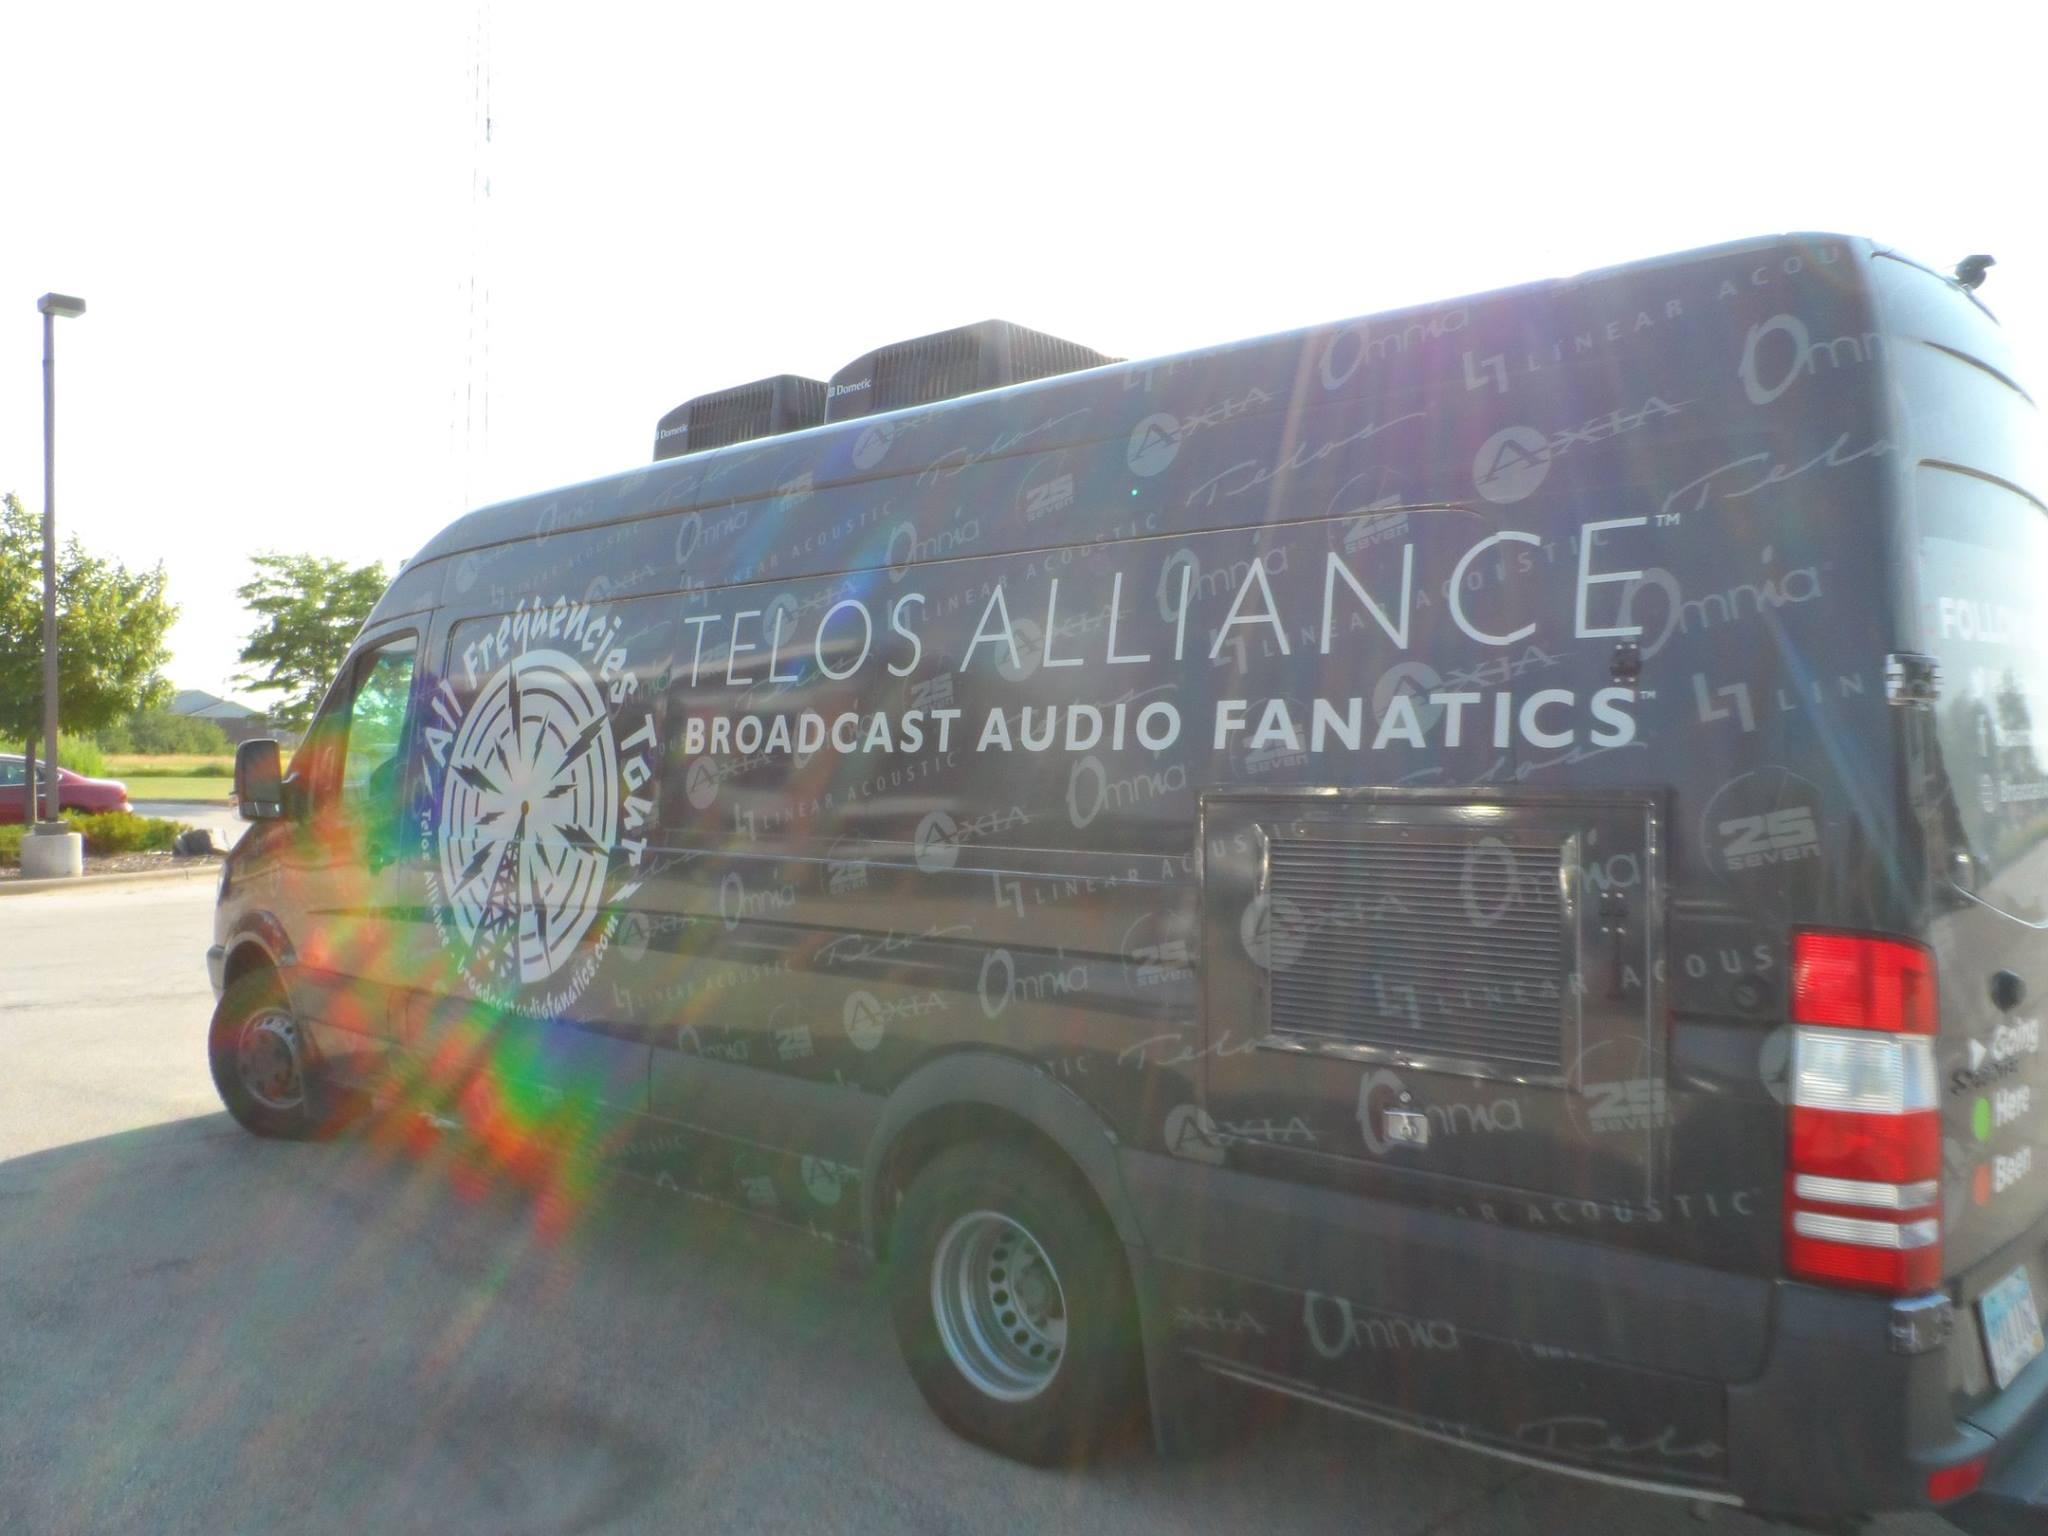 It's nothing but sunshine and rainbows for Dave and Telos Alliance van on the Omnia Tour!